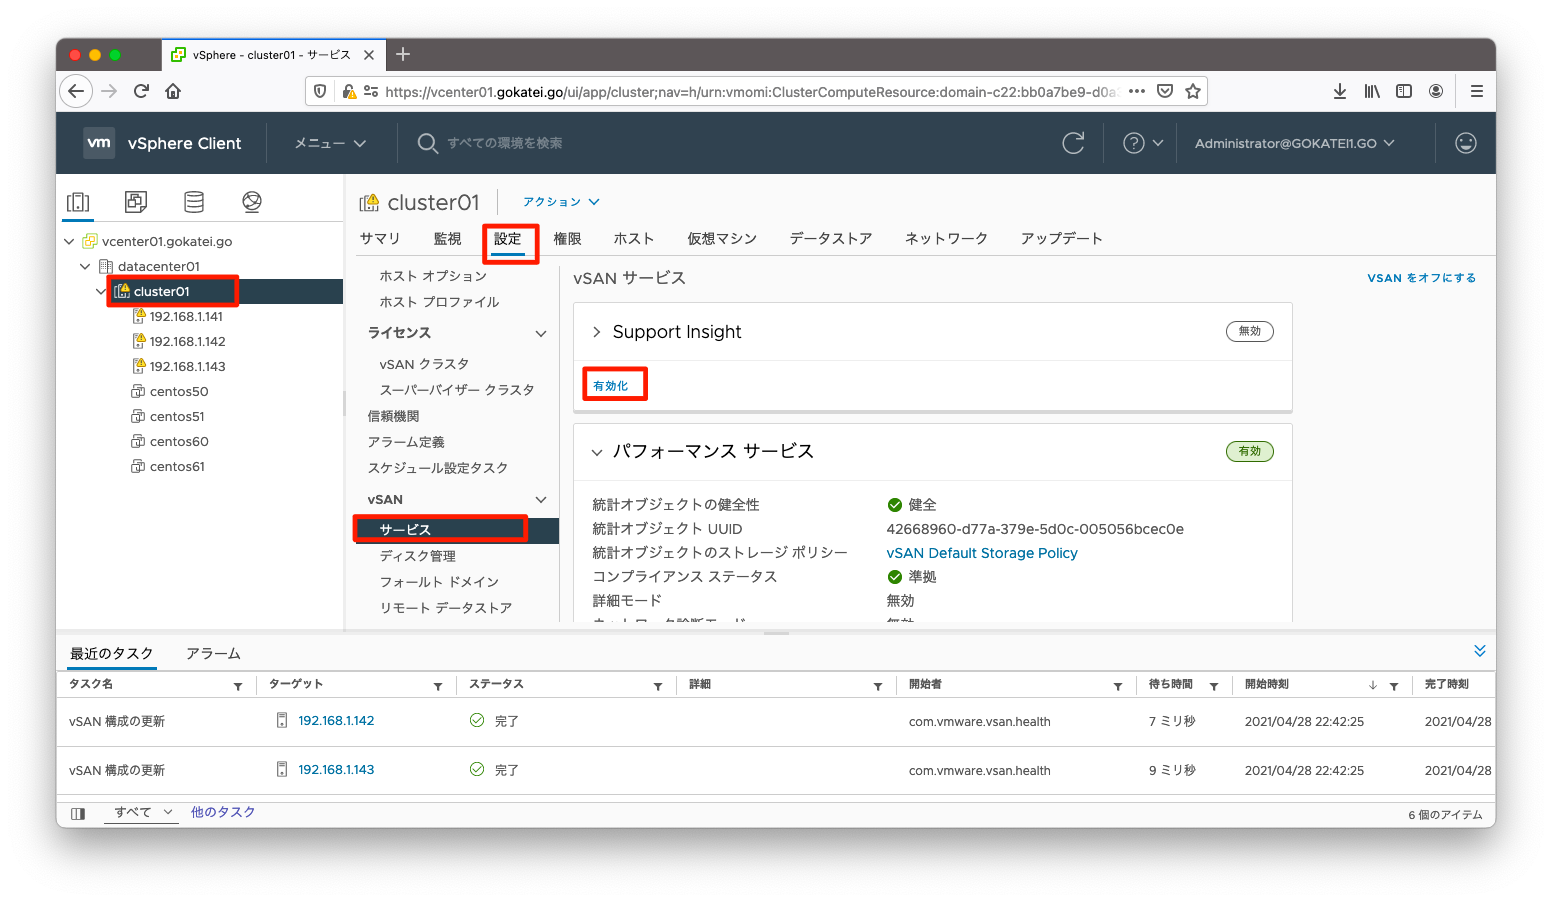 vSAN Support Insight 02